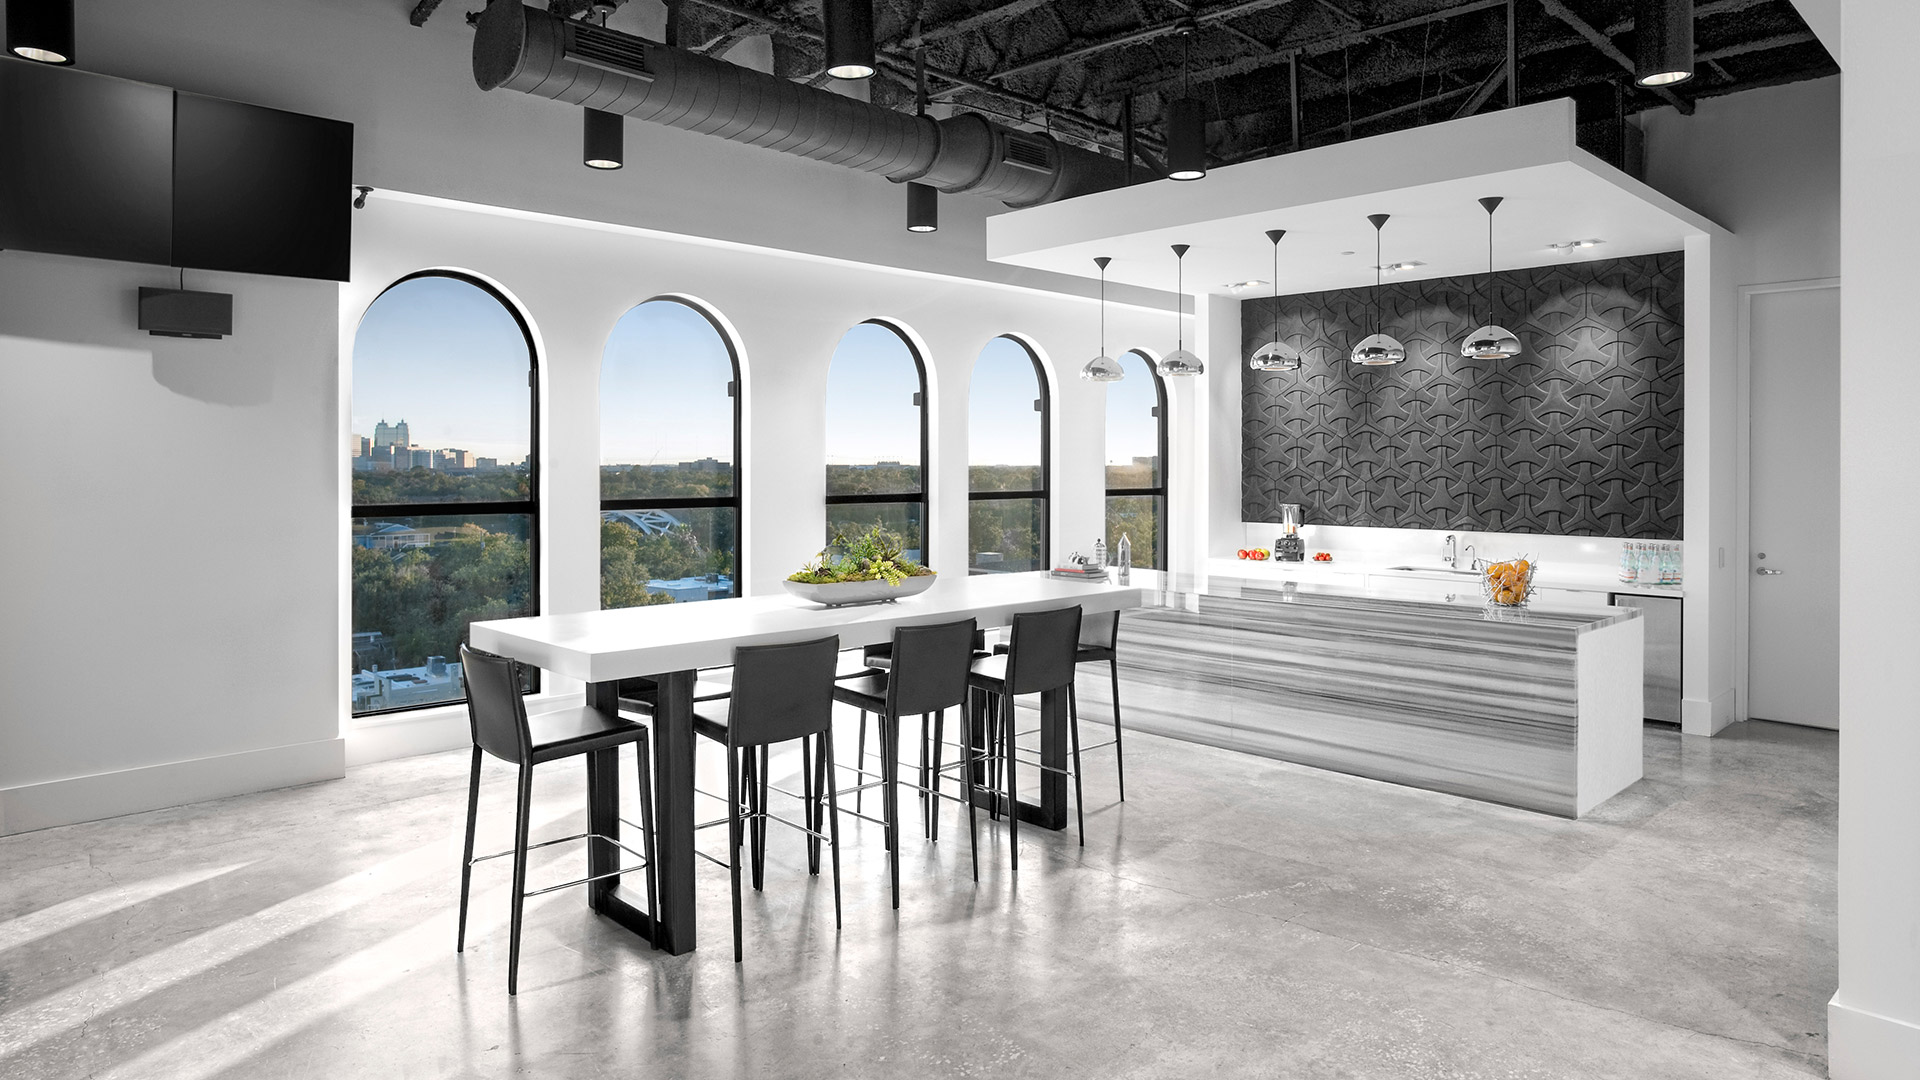 Corporate Interior Design Penthouse Breakroom with Views Gray and White